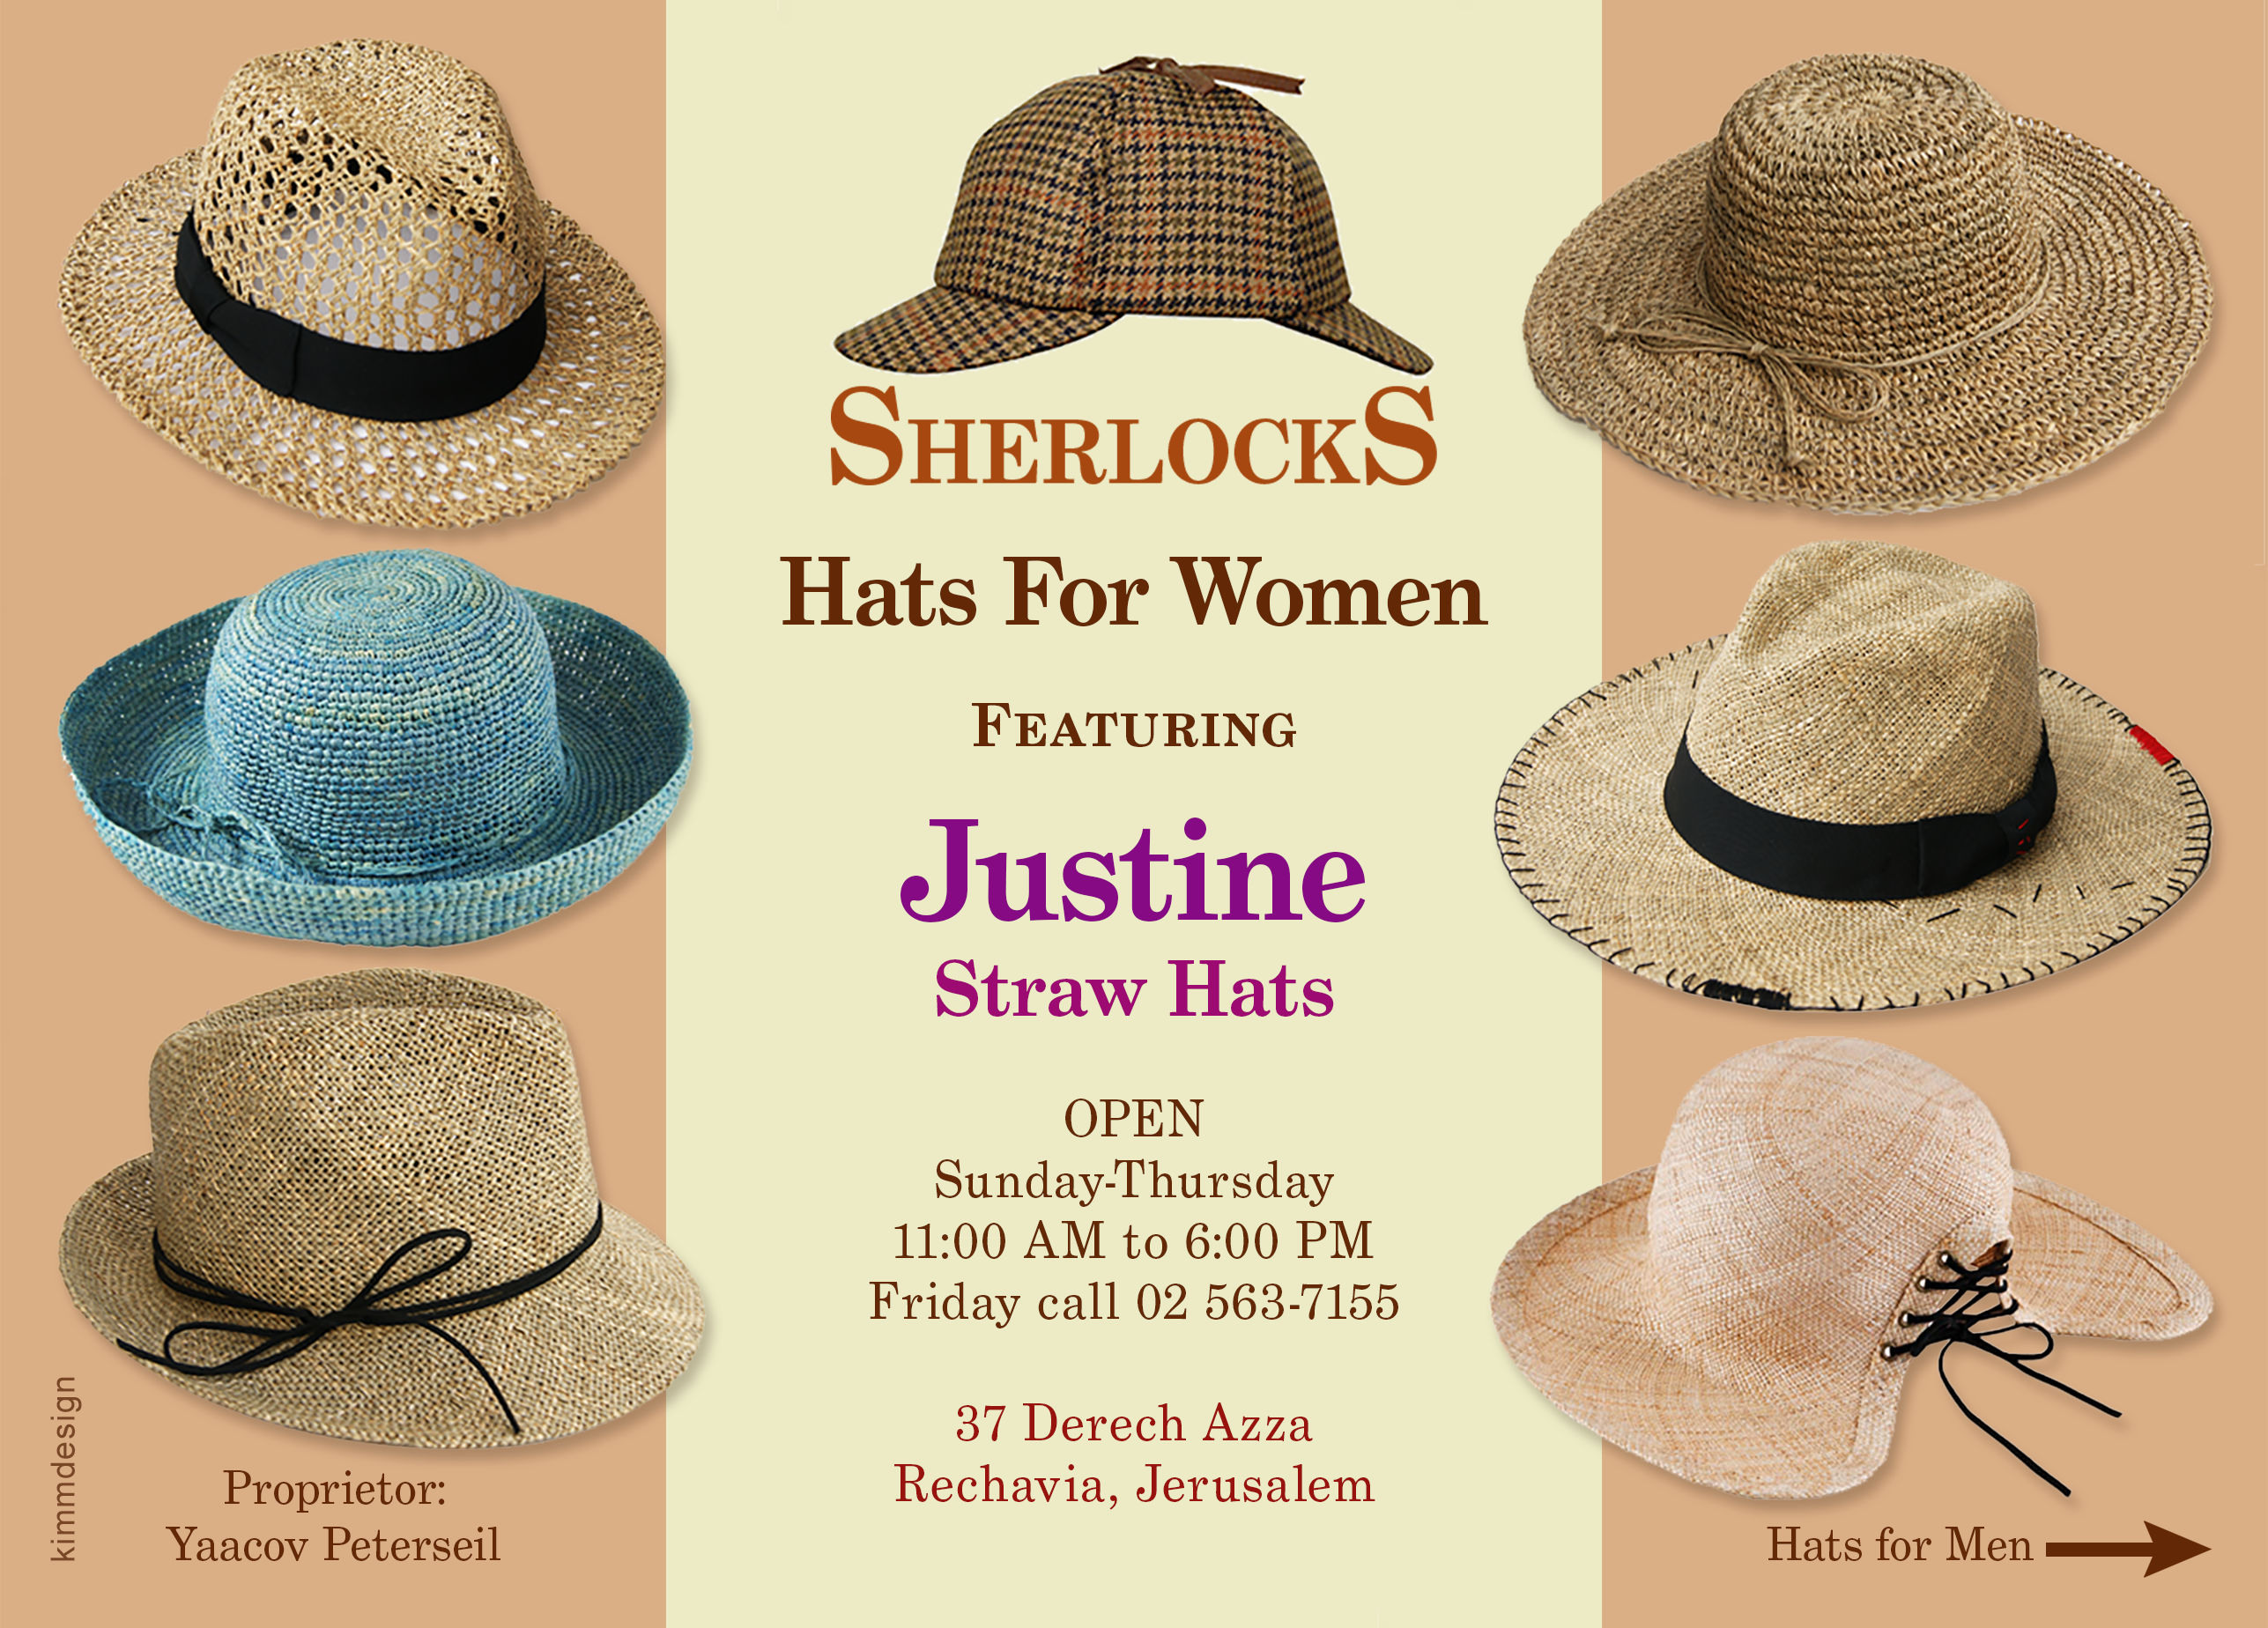 image of Sherlocks flier for Justine hats